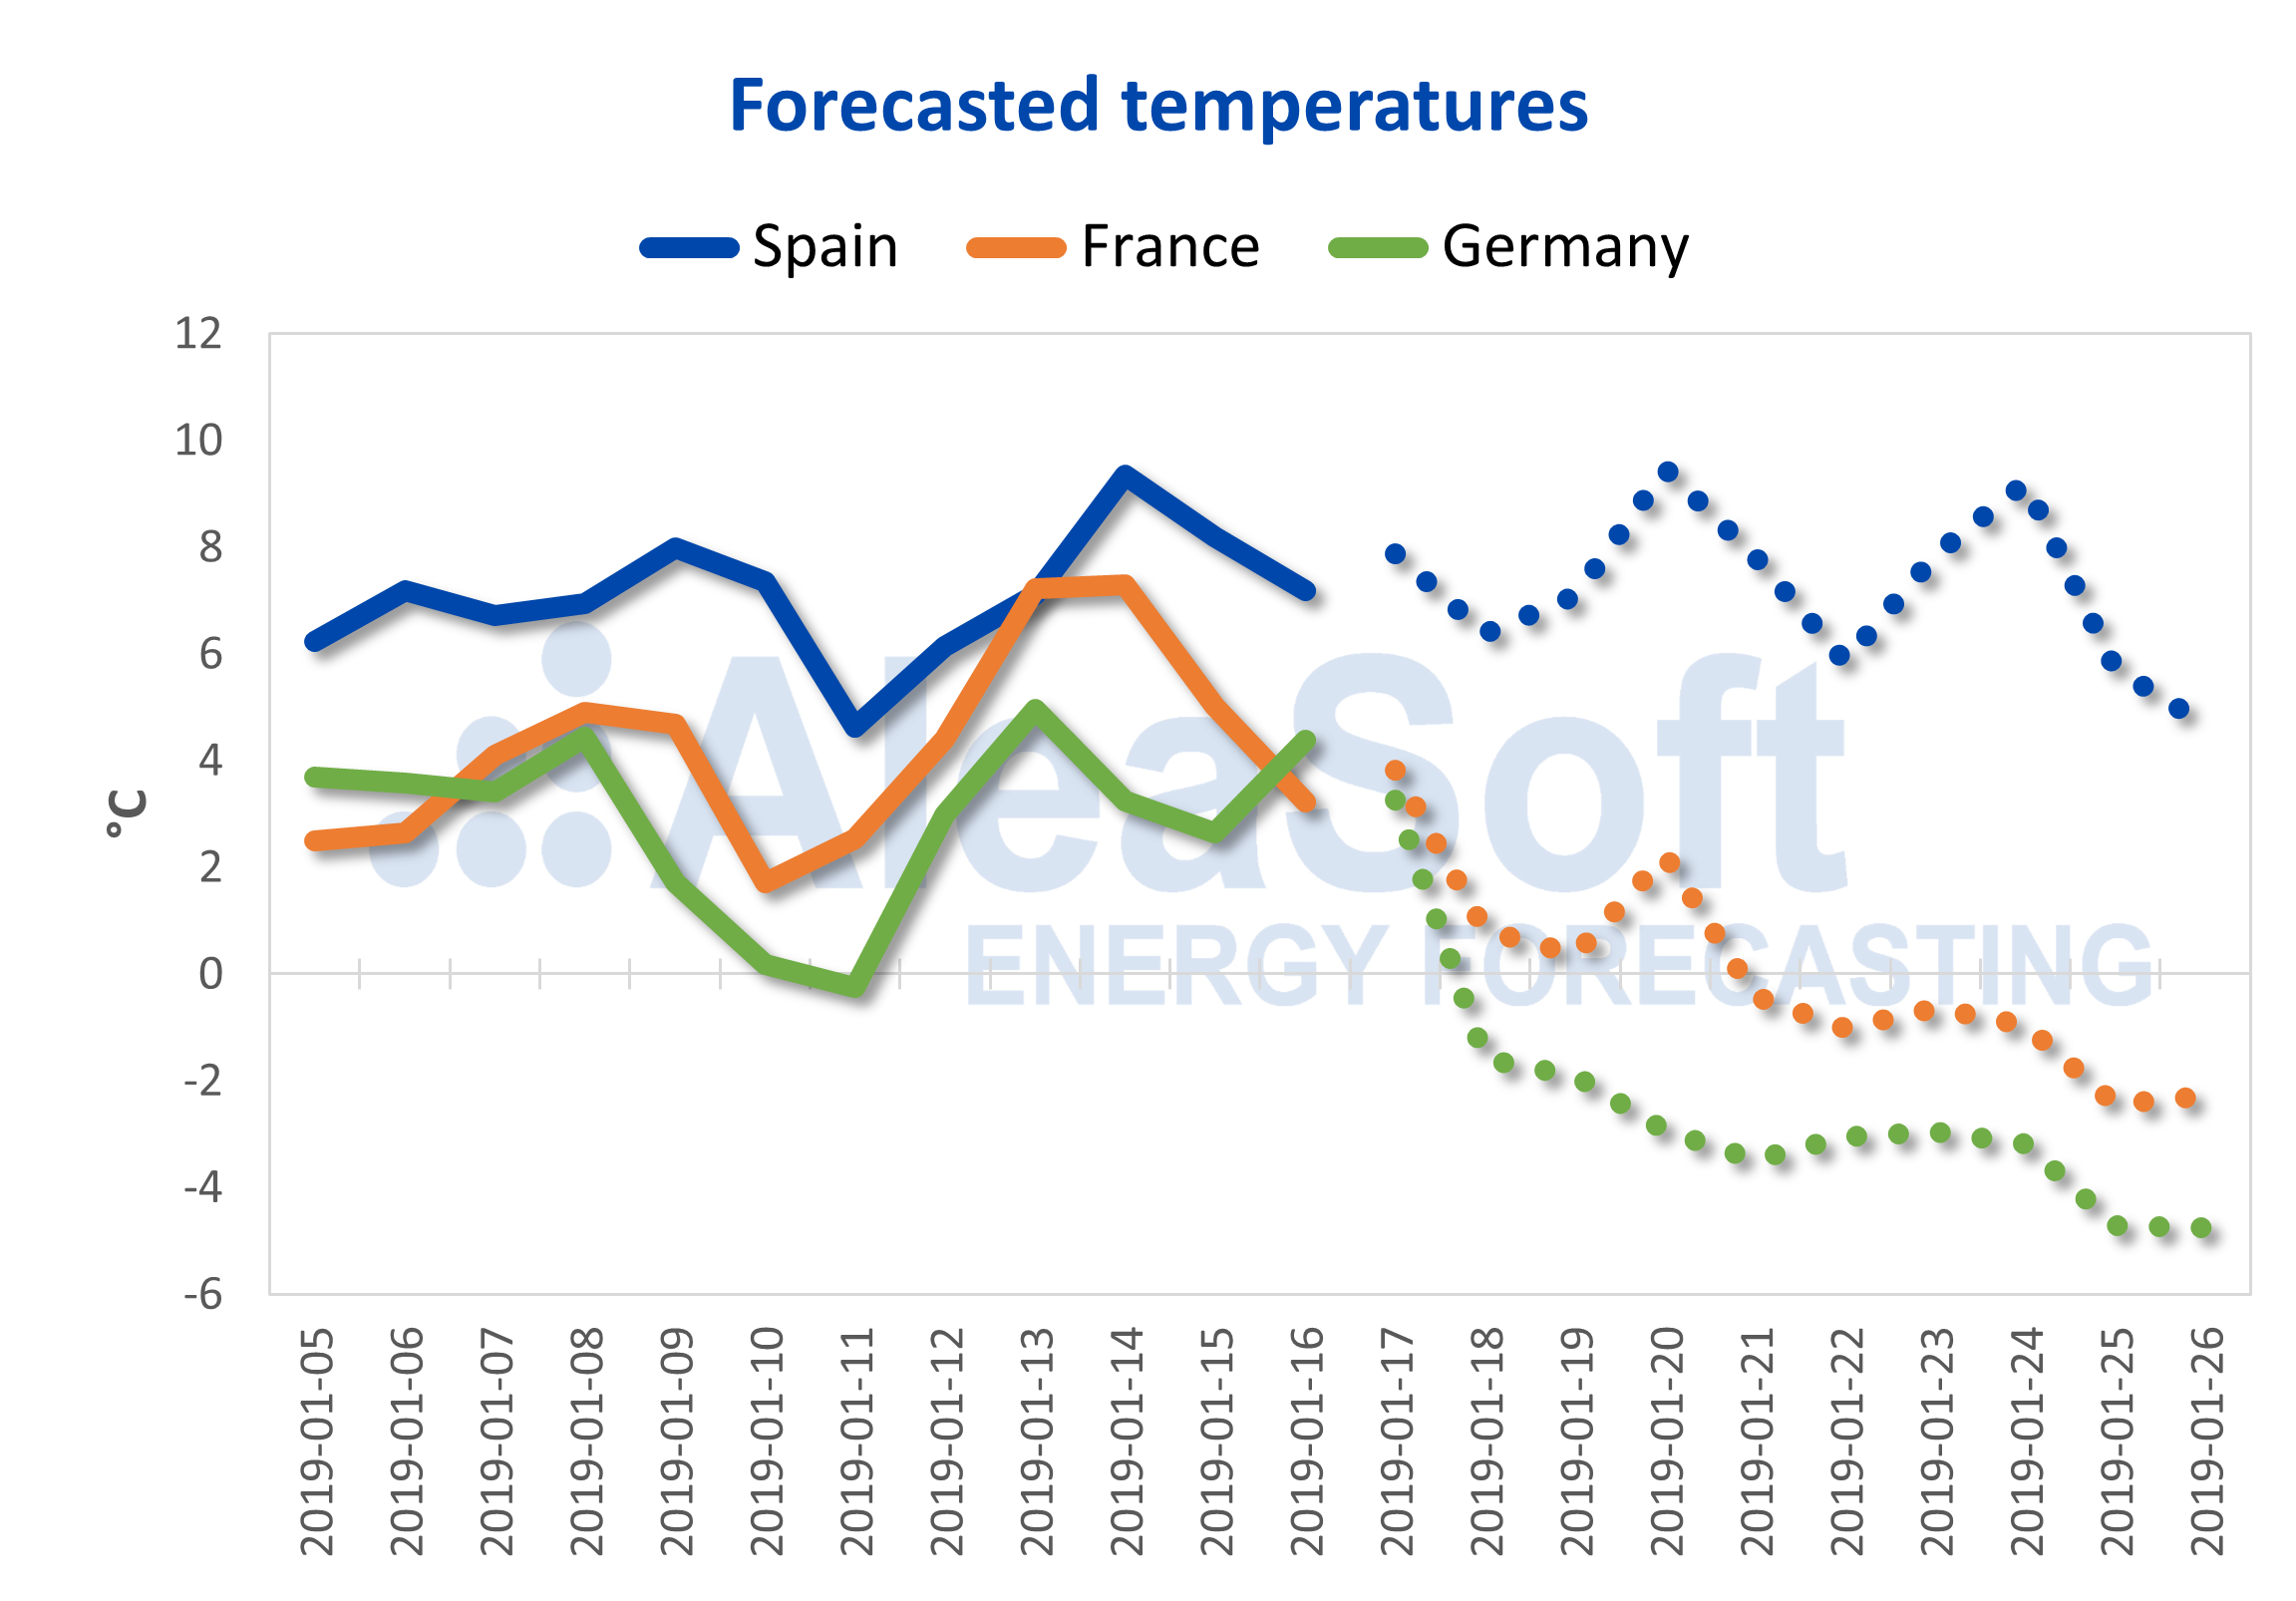 AleaSoft - Forecasted temperatures Spain France Germany